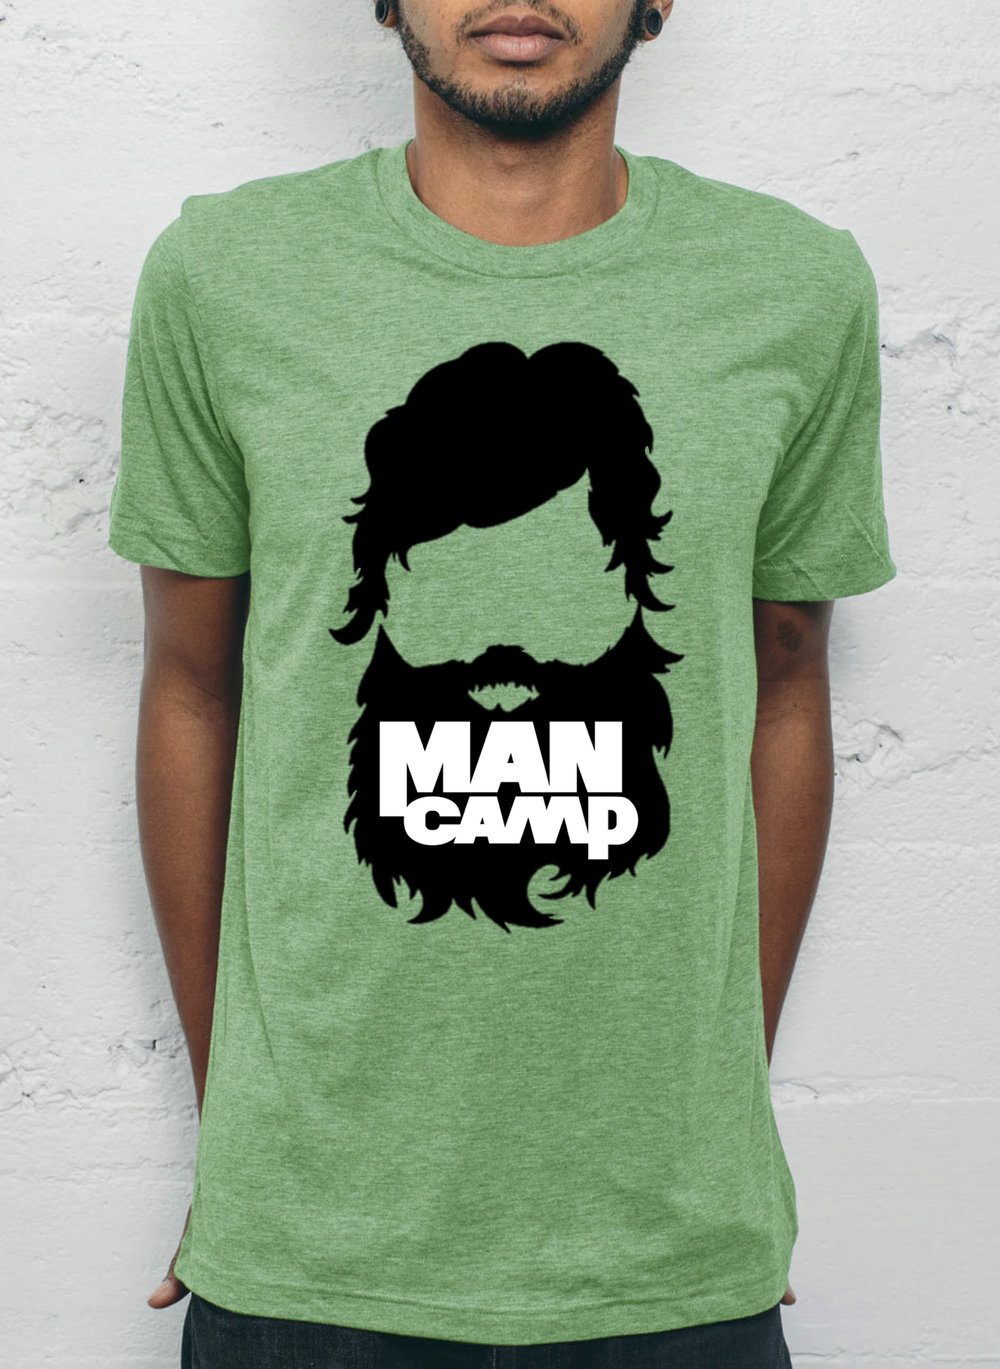 Details: - Man Camp is only $15 for early registration (until July 10th) and $20 for general admission. All early registrations are guaranteed a Man Camp t-shirt! Registration for all attendees before Aug. 1 includes free items from event sponsors as well as free food and coffee. You will also be entered to win giveaways and prize packs. Here are the sponsors for this year's Man Camp...